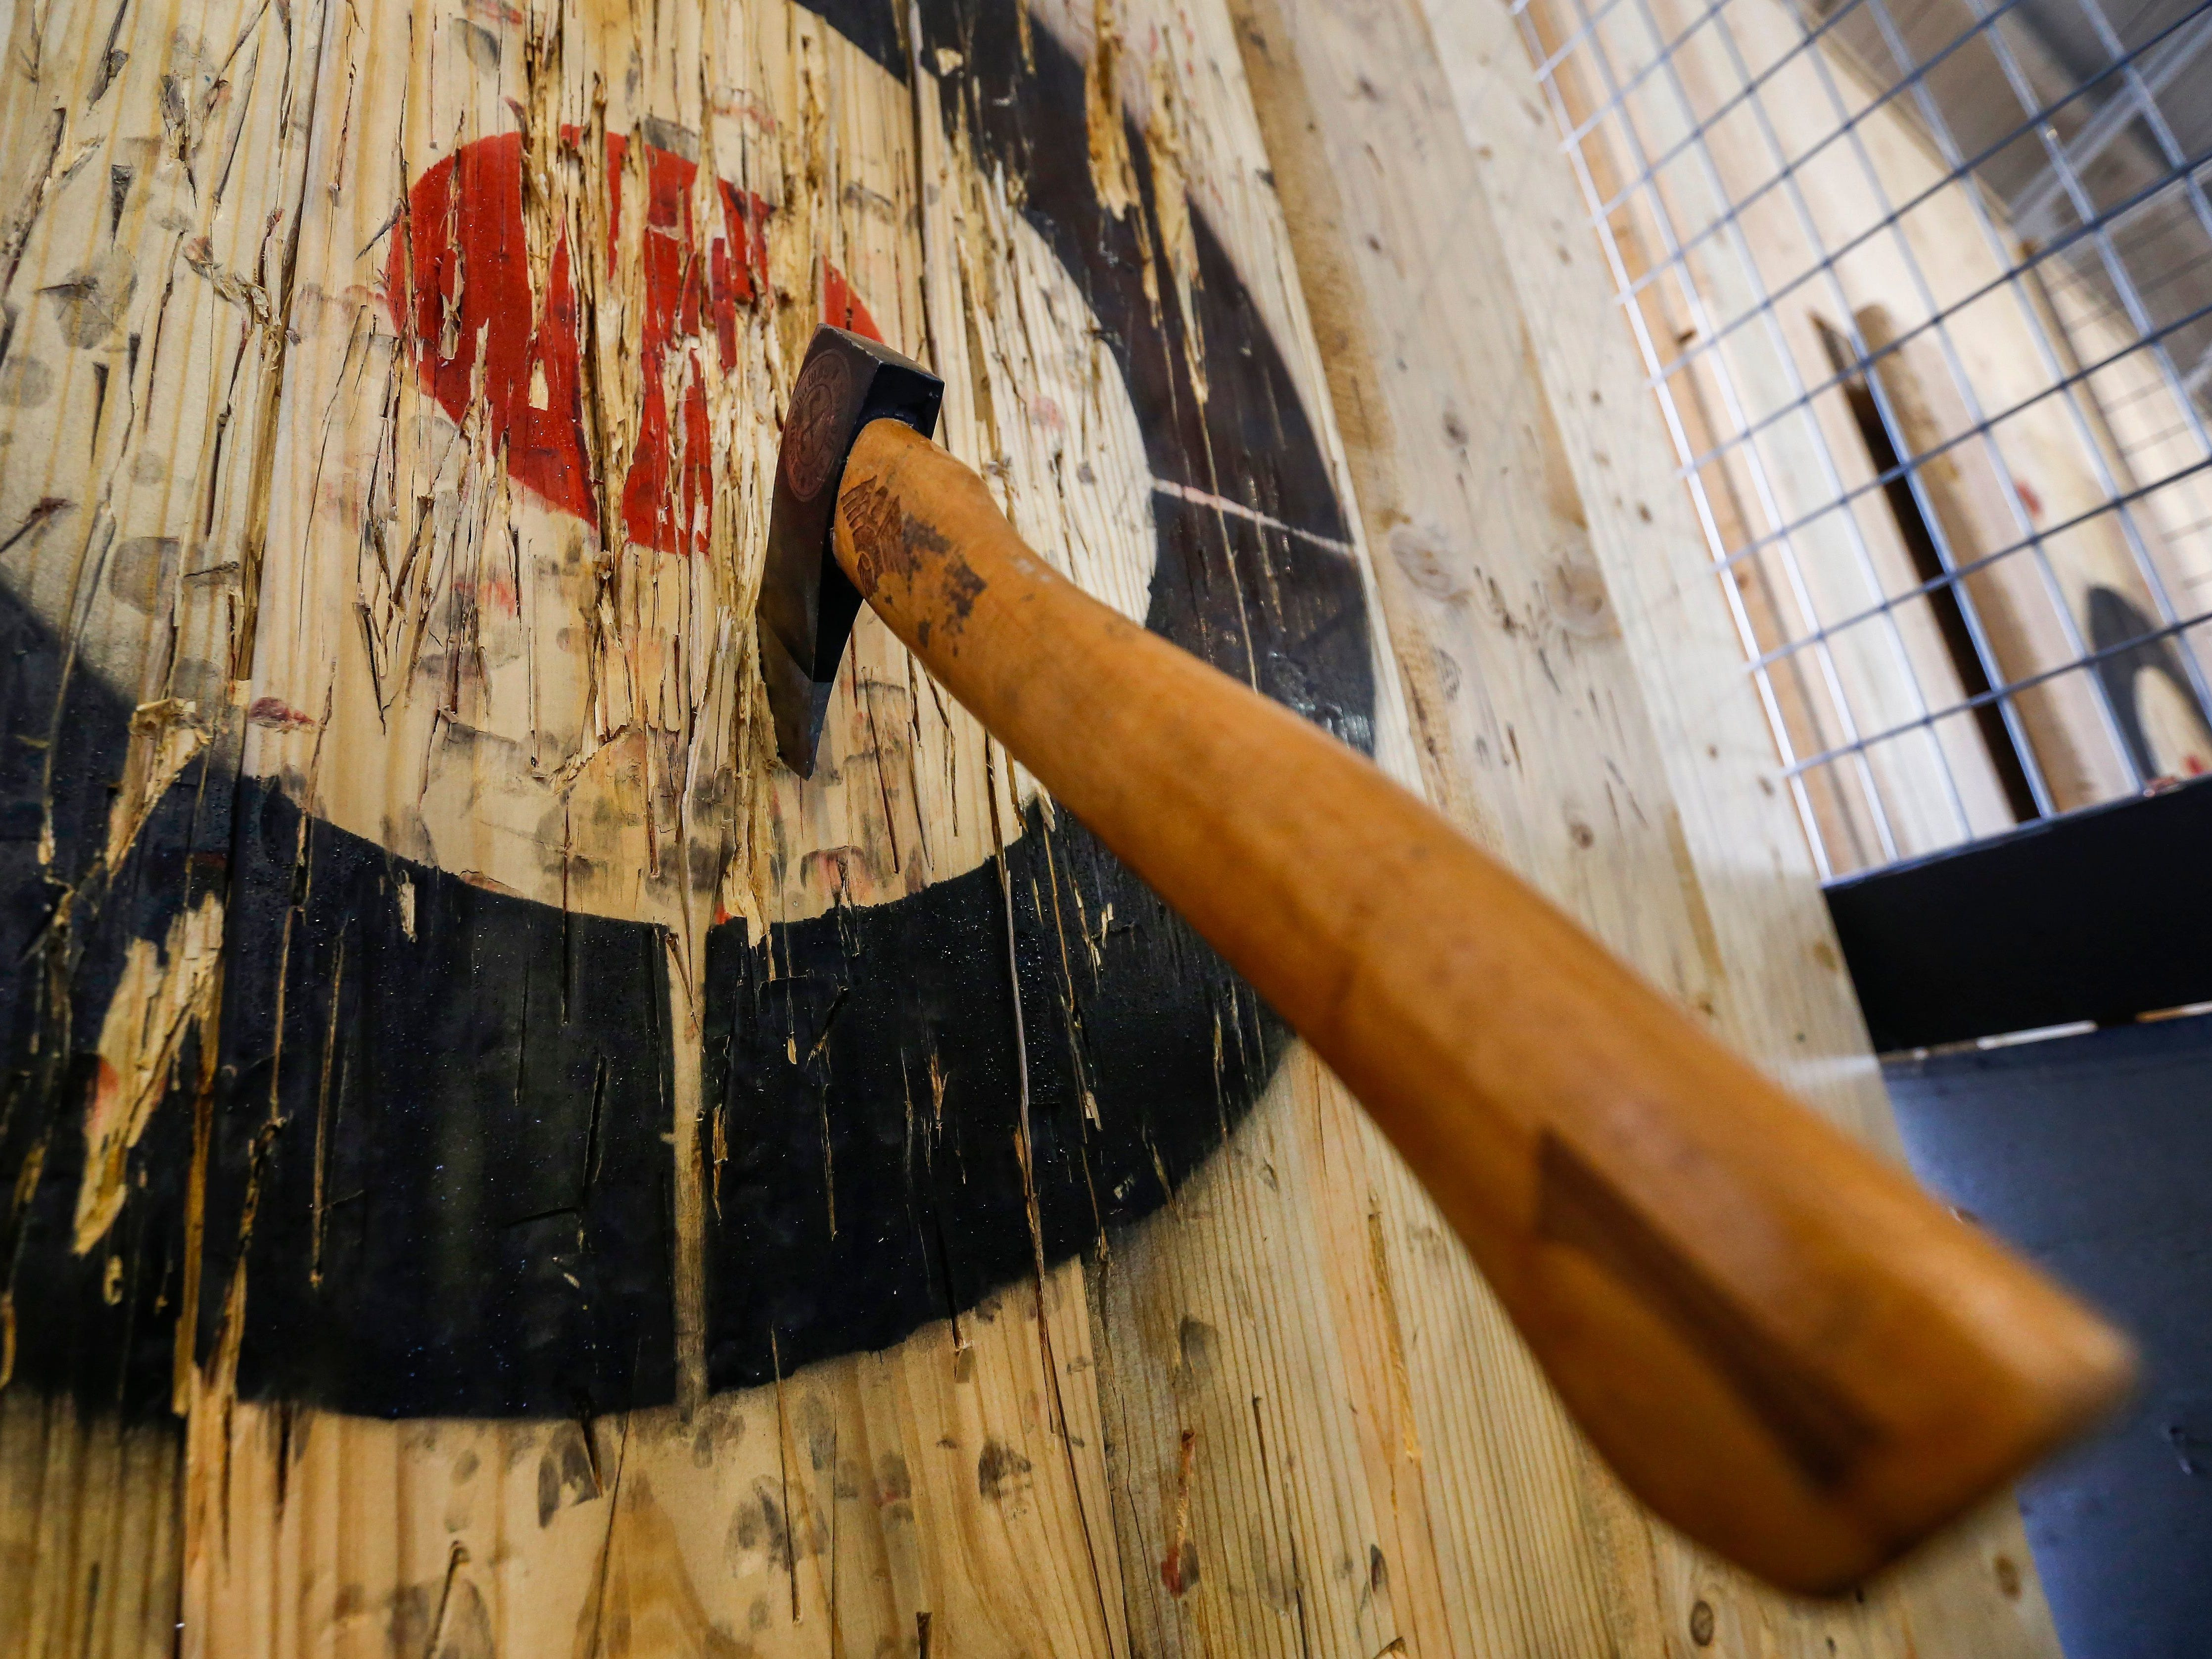 Go throw some axes. TommyHawks Axe House and Craft Axe Throwing are the two locations in Springfield.